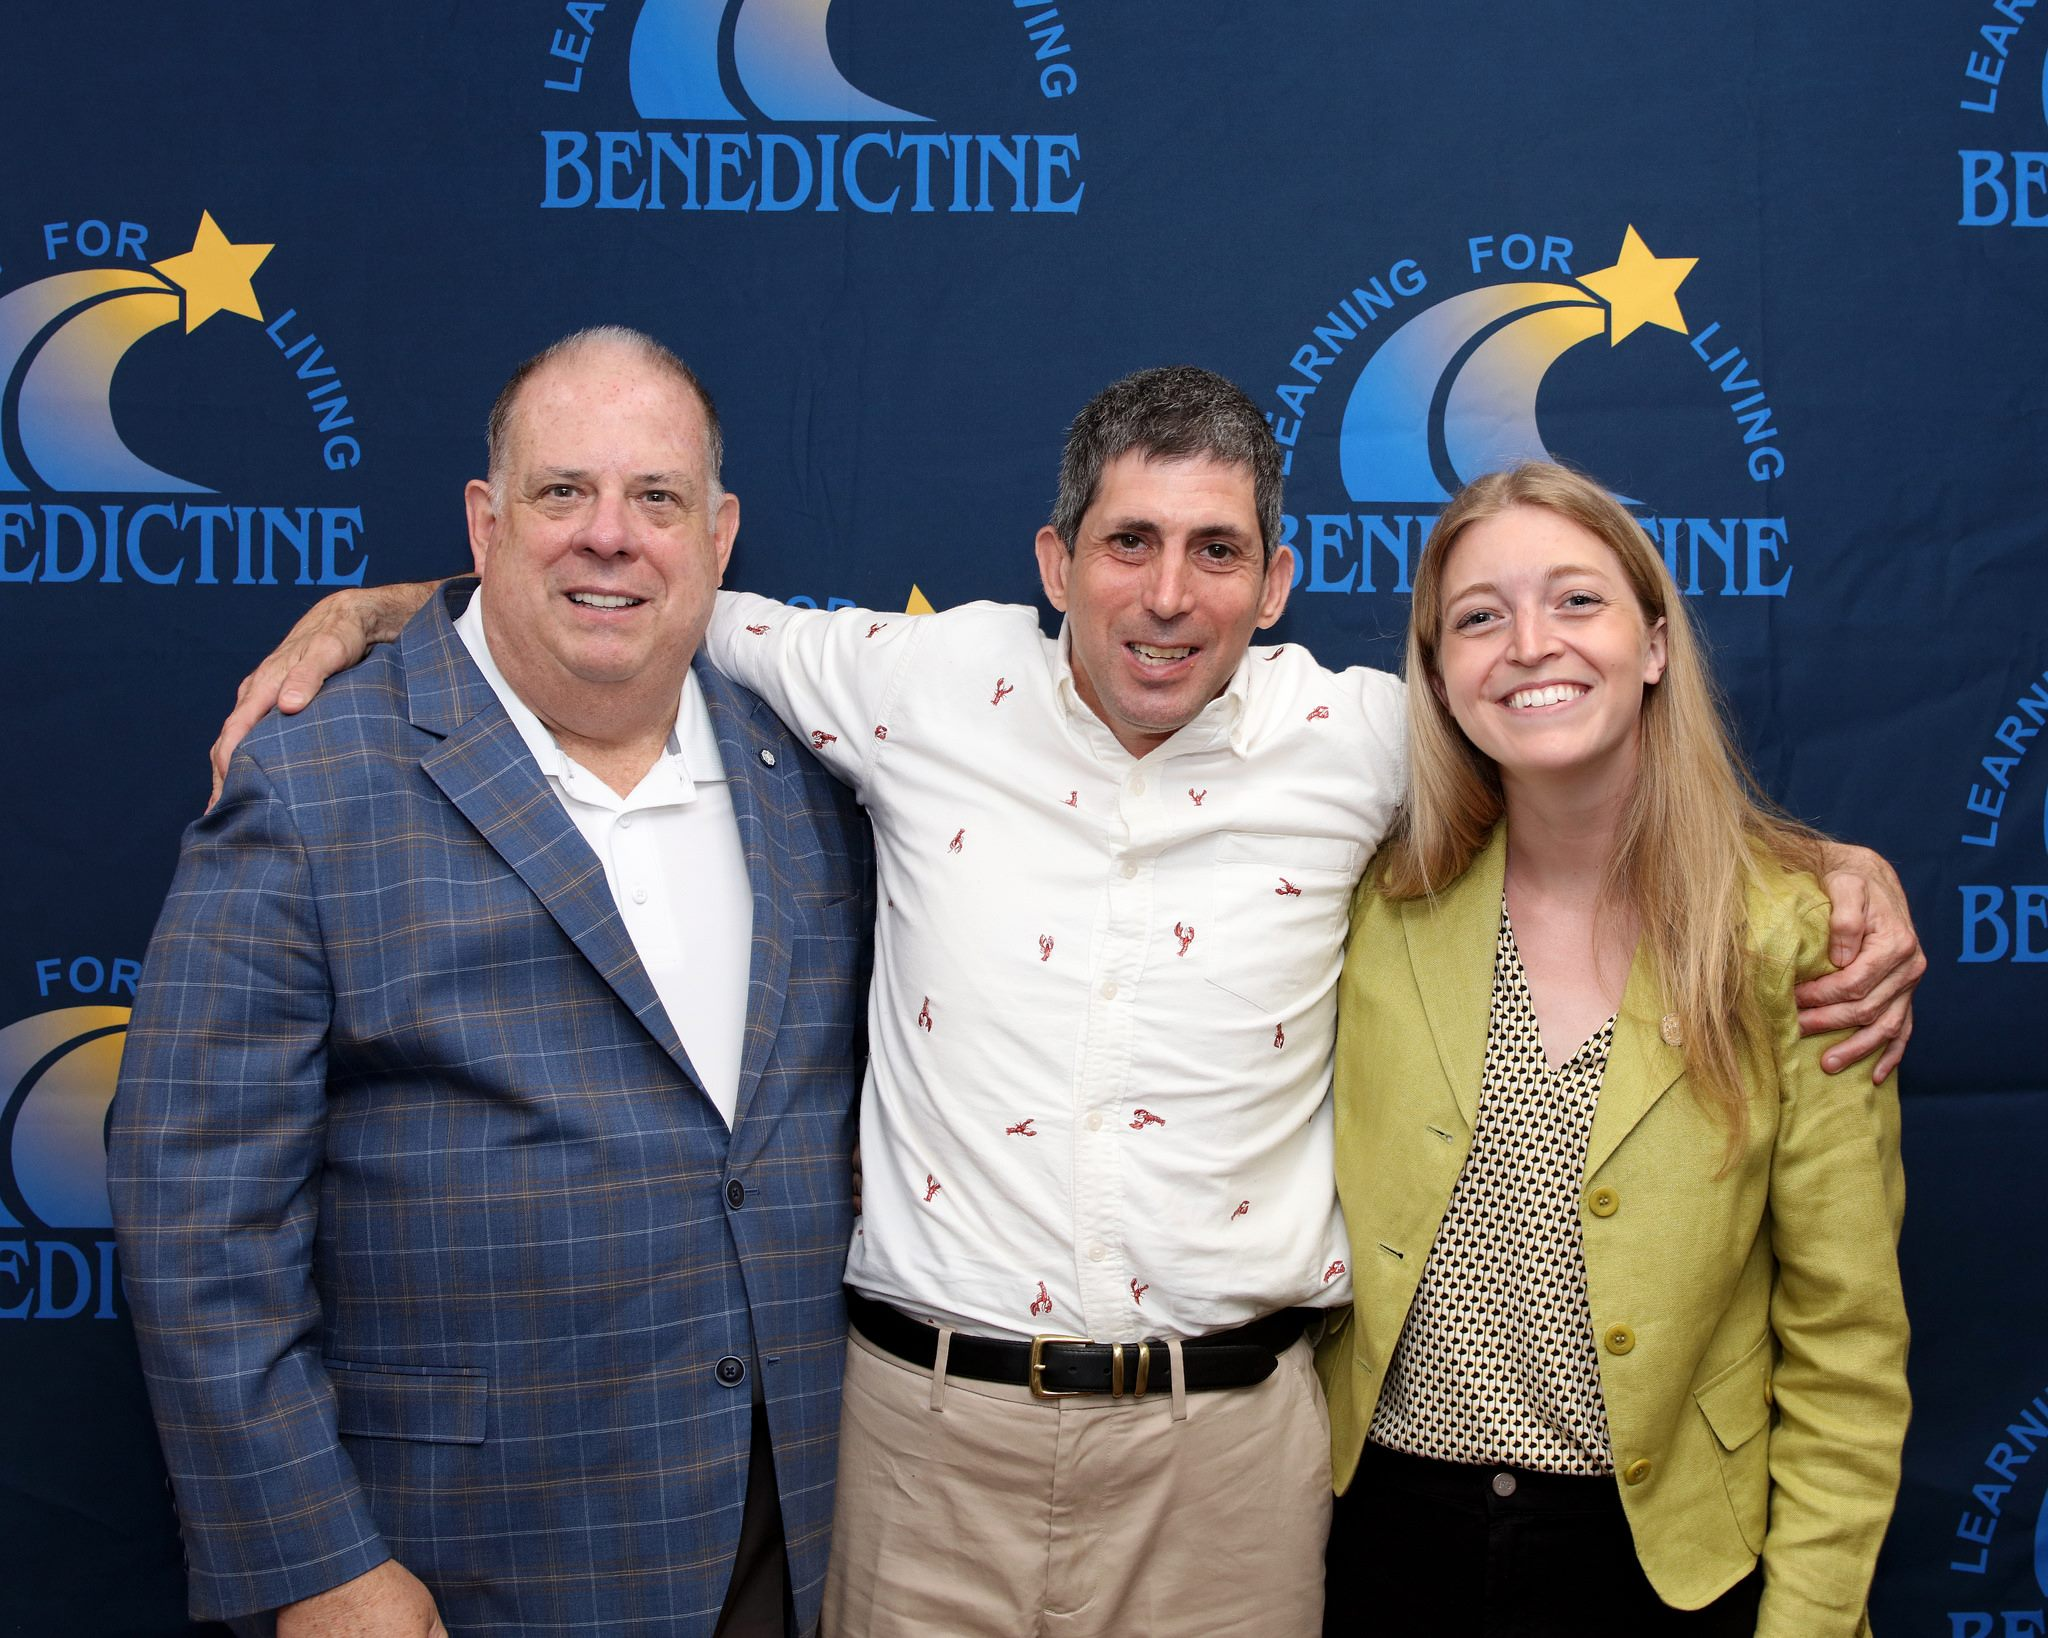 Maryland Governor Larry Hogan visits Bendictine